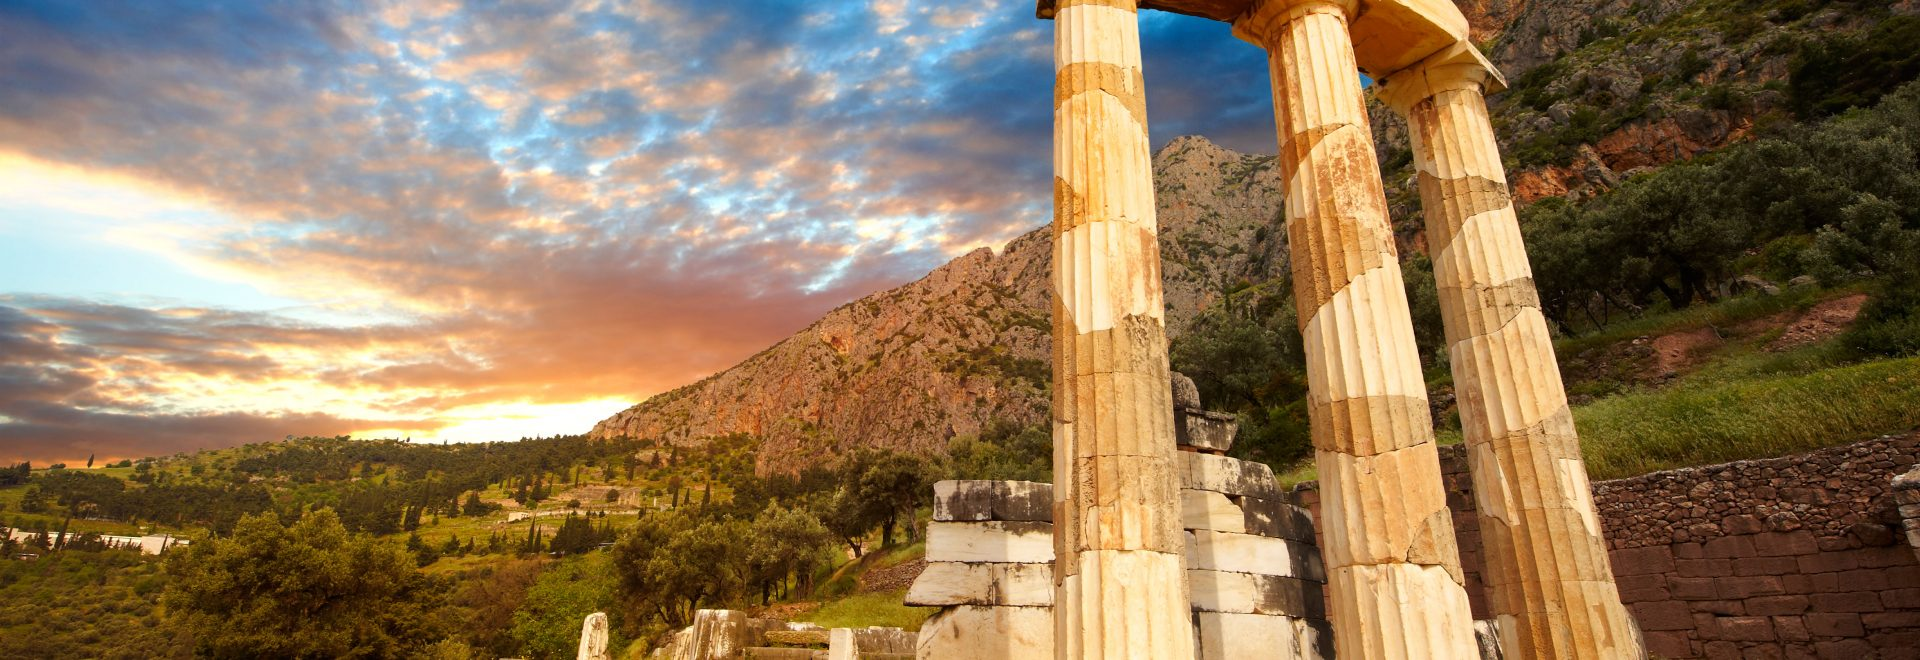 CFRF8W The Tholos at the sanctuary of Athena Pronaia,  a circular building with Doric columns 380 BC . Delphi Greece